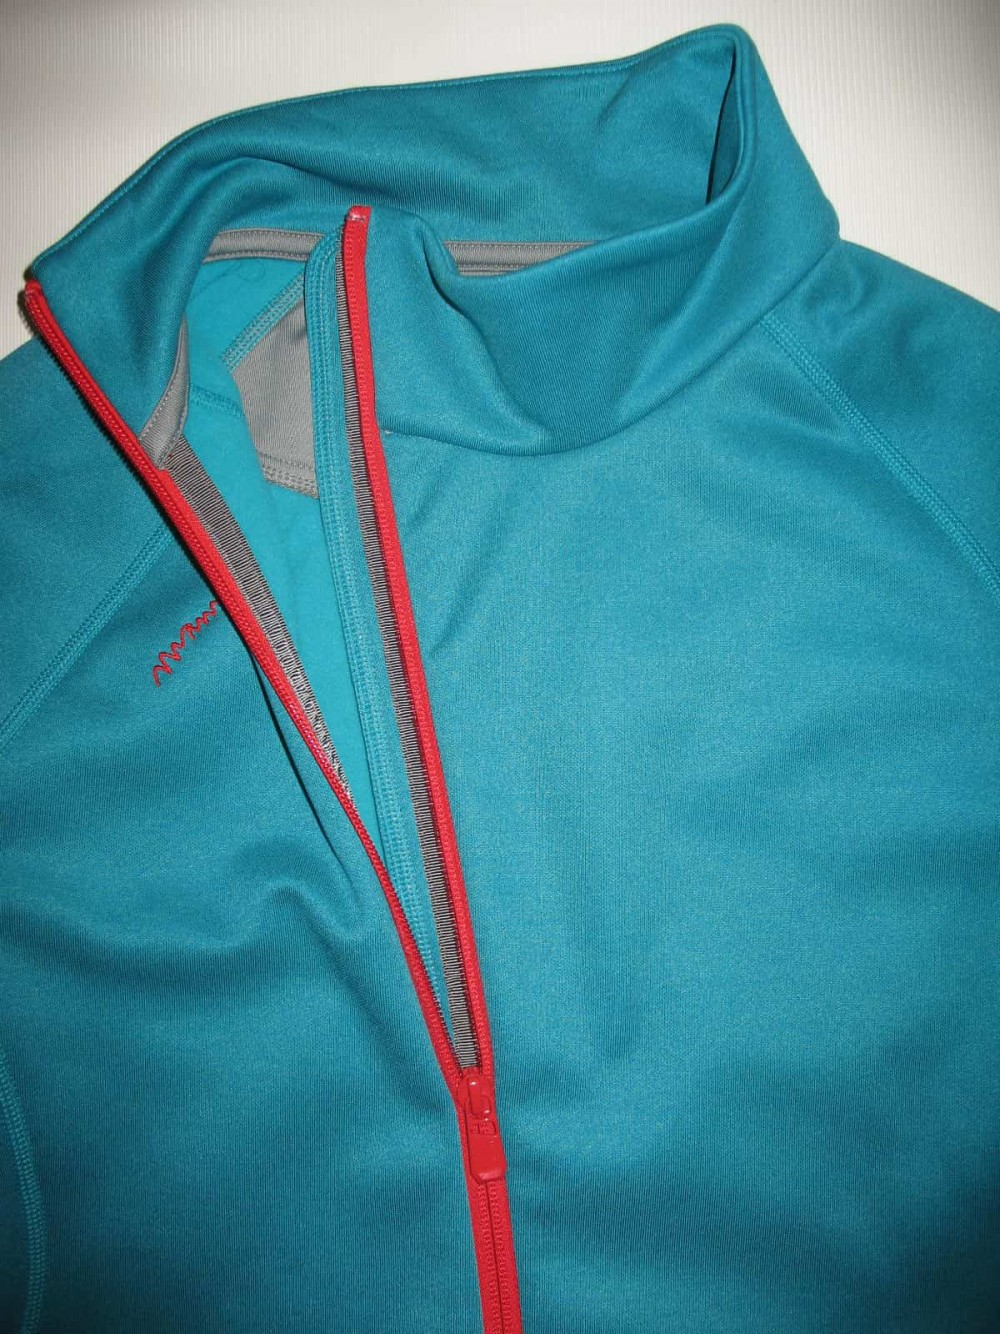 Кофта MAMMUT Get Away fleece jacket lady (размер M) - 4